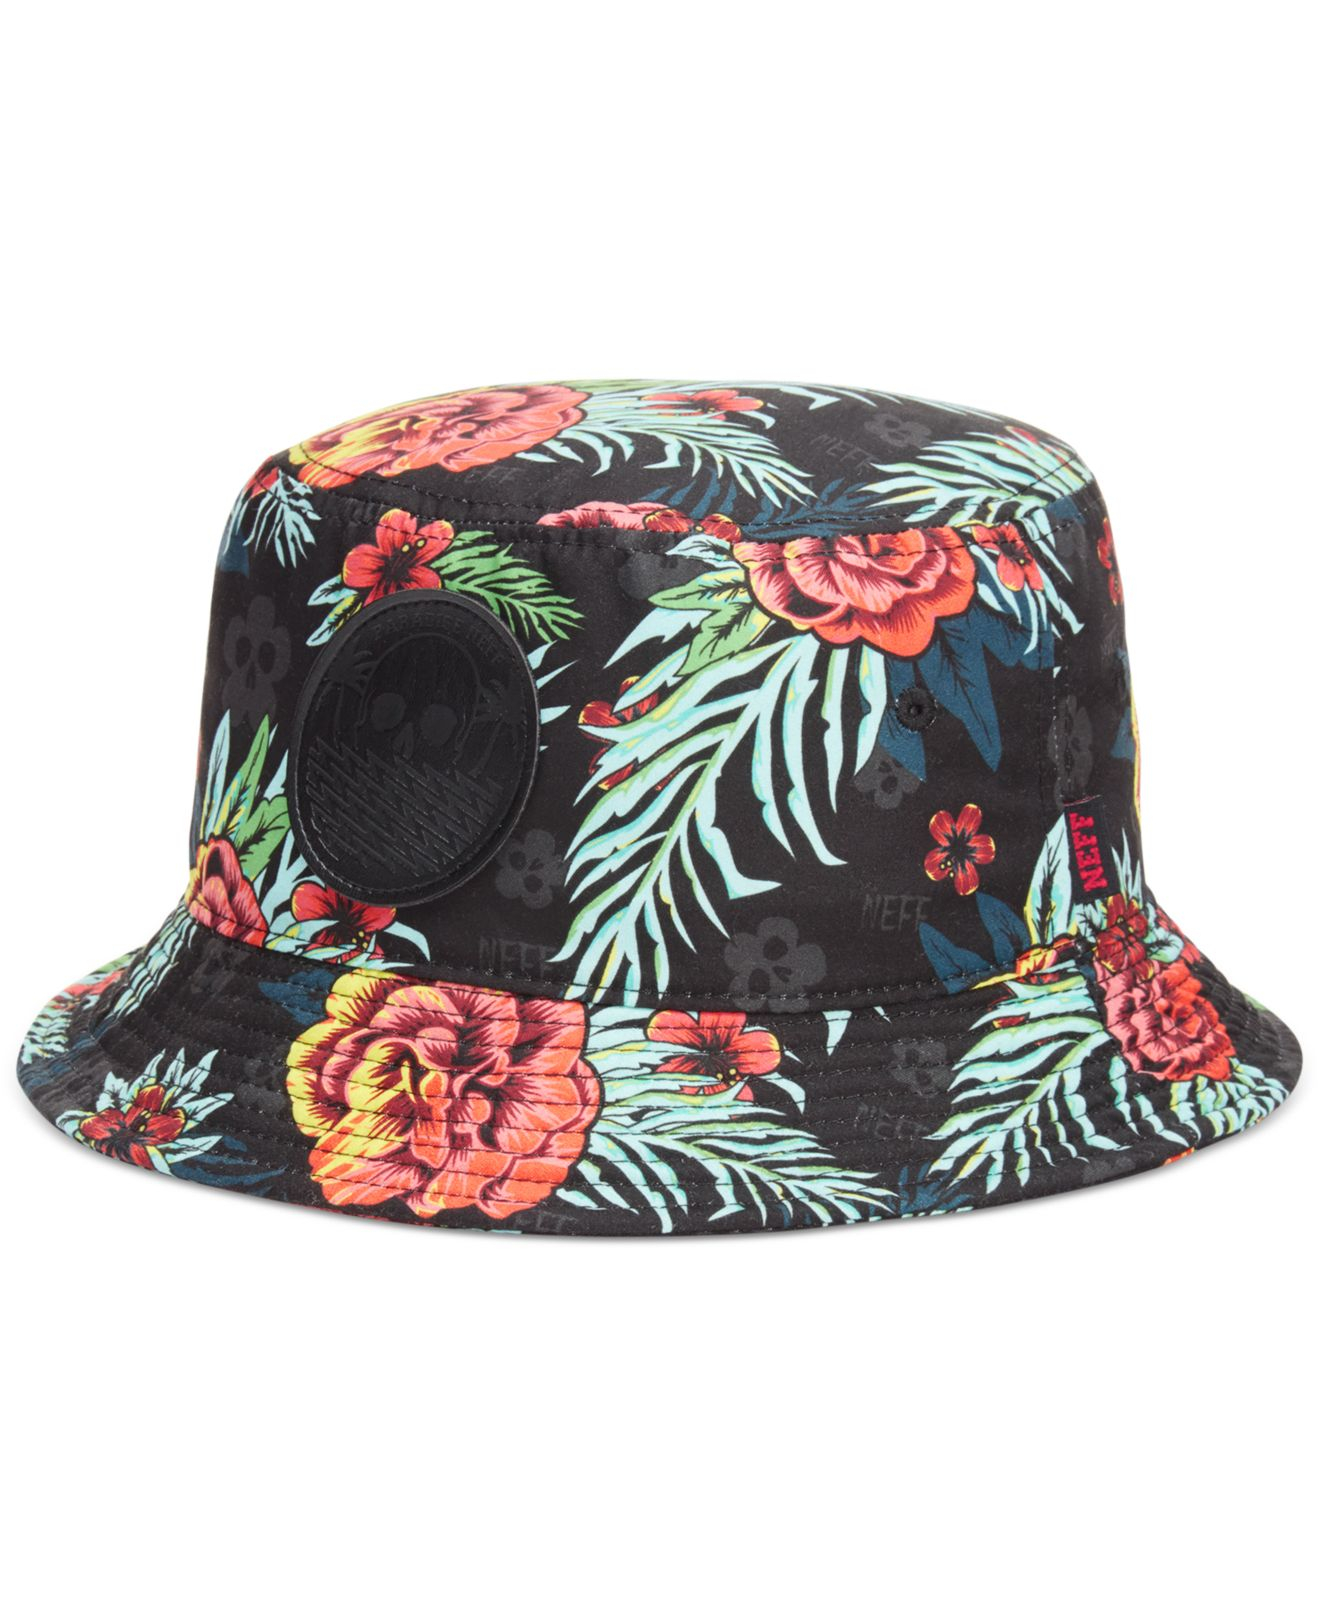 aa32563e194 official store neff mickey floral bucket fisherman hat 44898 e59a3   official store lyst neff astro bucket hat in black for men 4ca68 f86ff